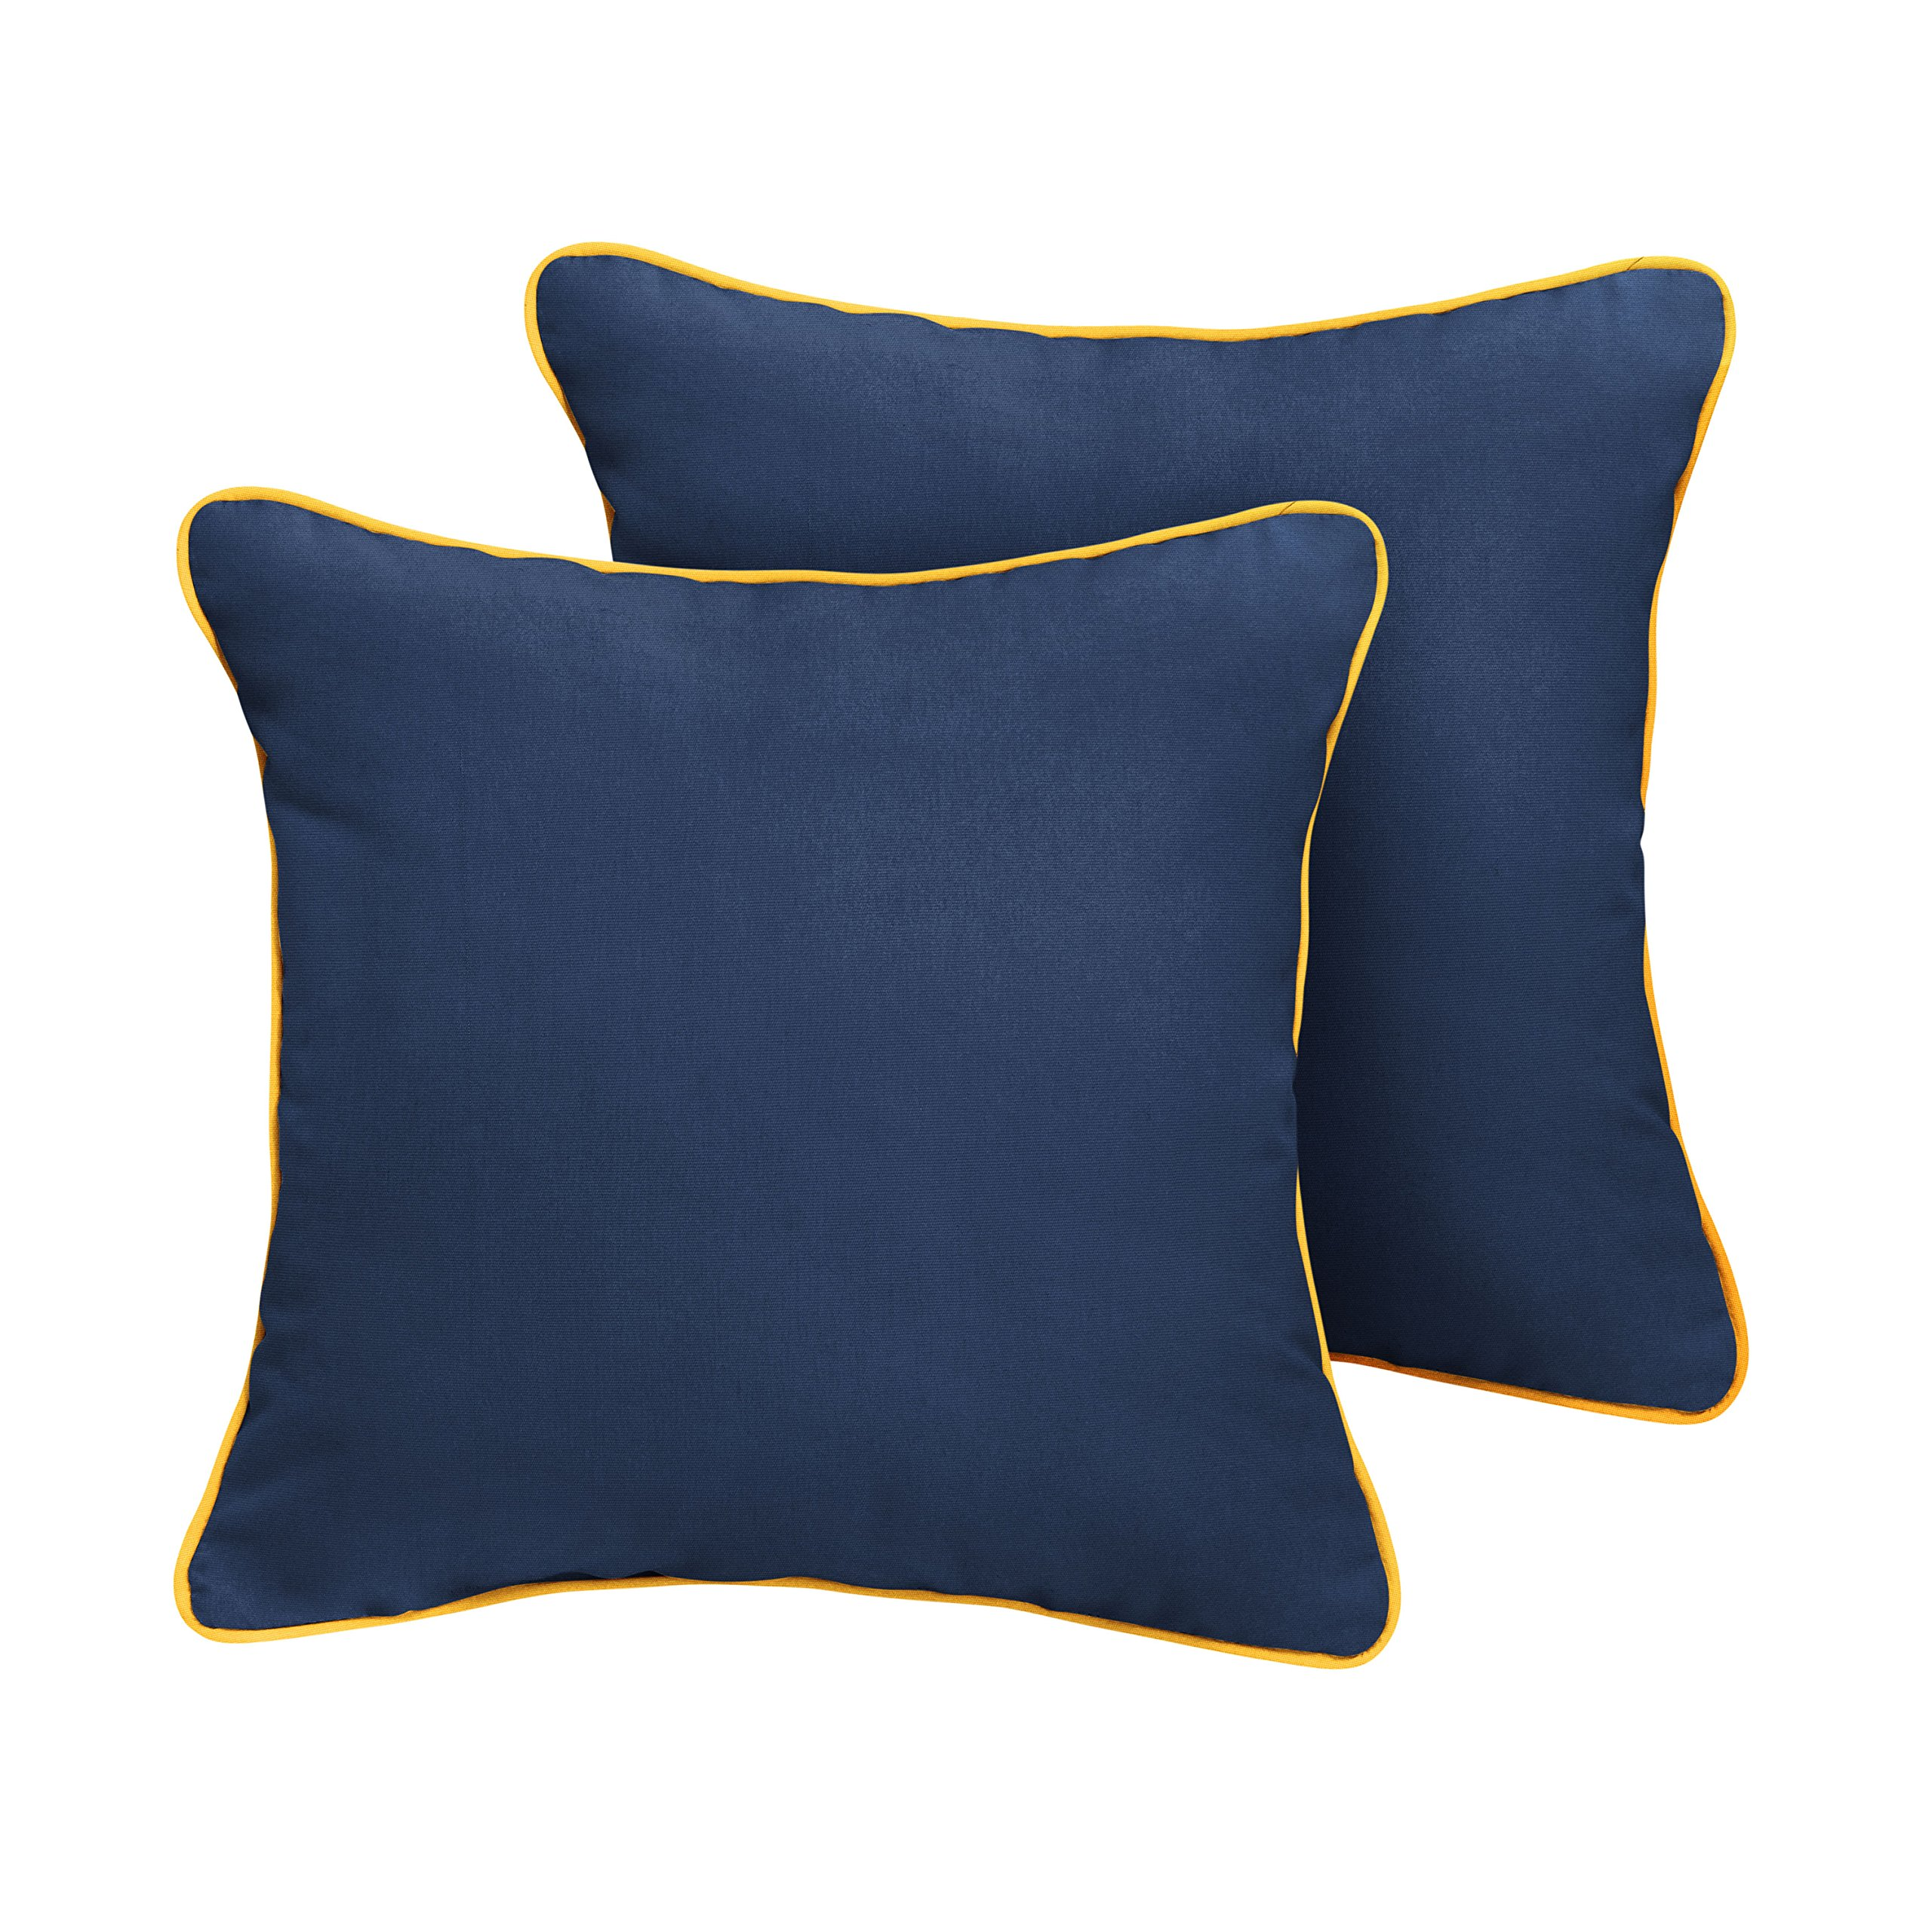 Mozaic Company Sunbrella Indoor/ Outdoor Corded Pillows, Canvas Navy and Sunflower Yellow, Set of 2